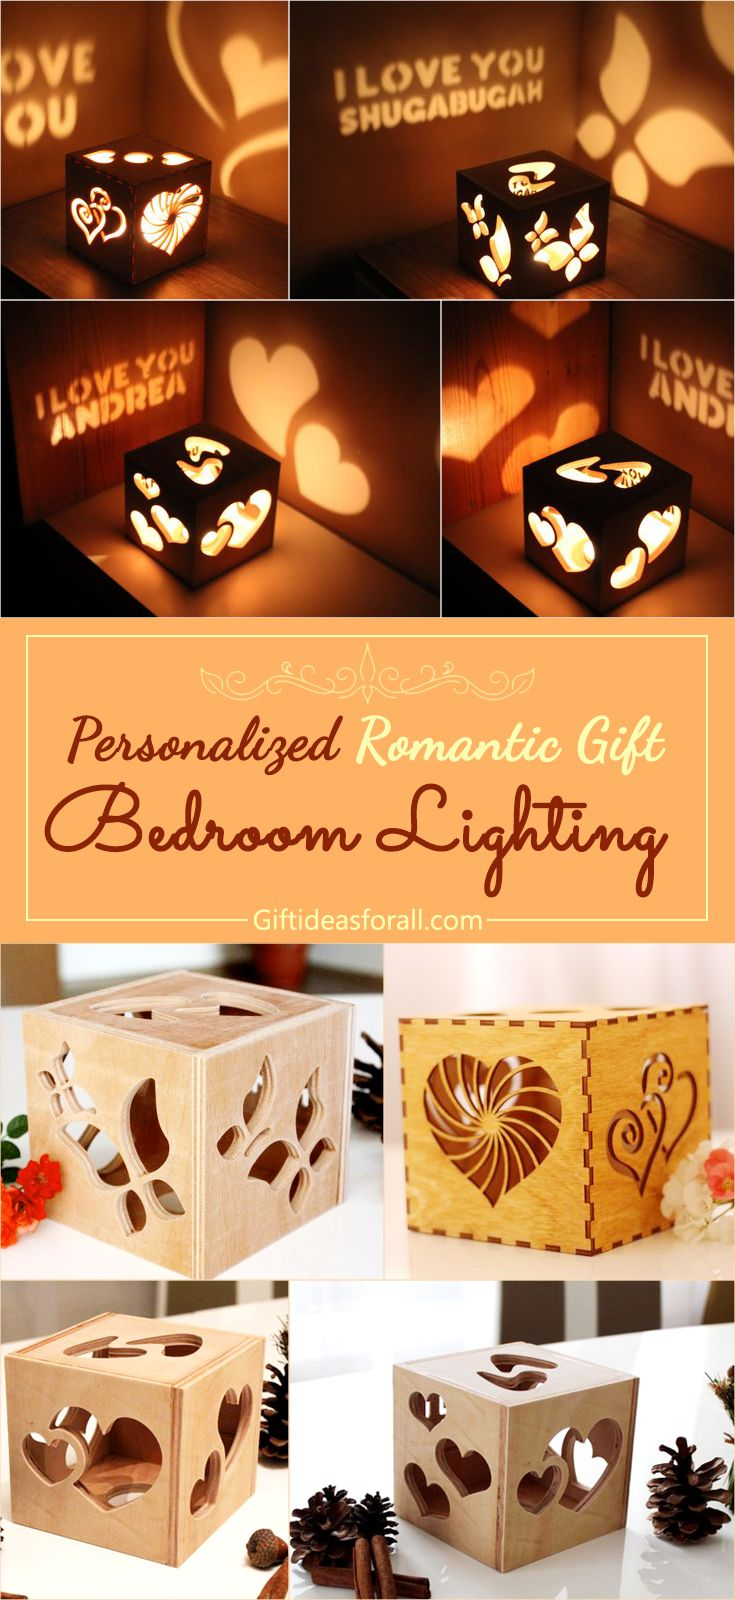 Personalized Romantic Bedroom Lighting Gifts Giftideas Romanticgift Giftforher Birthdaygift